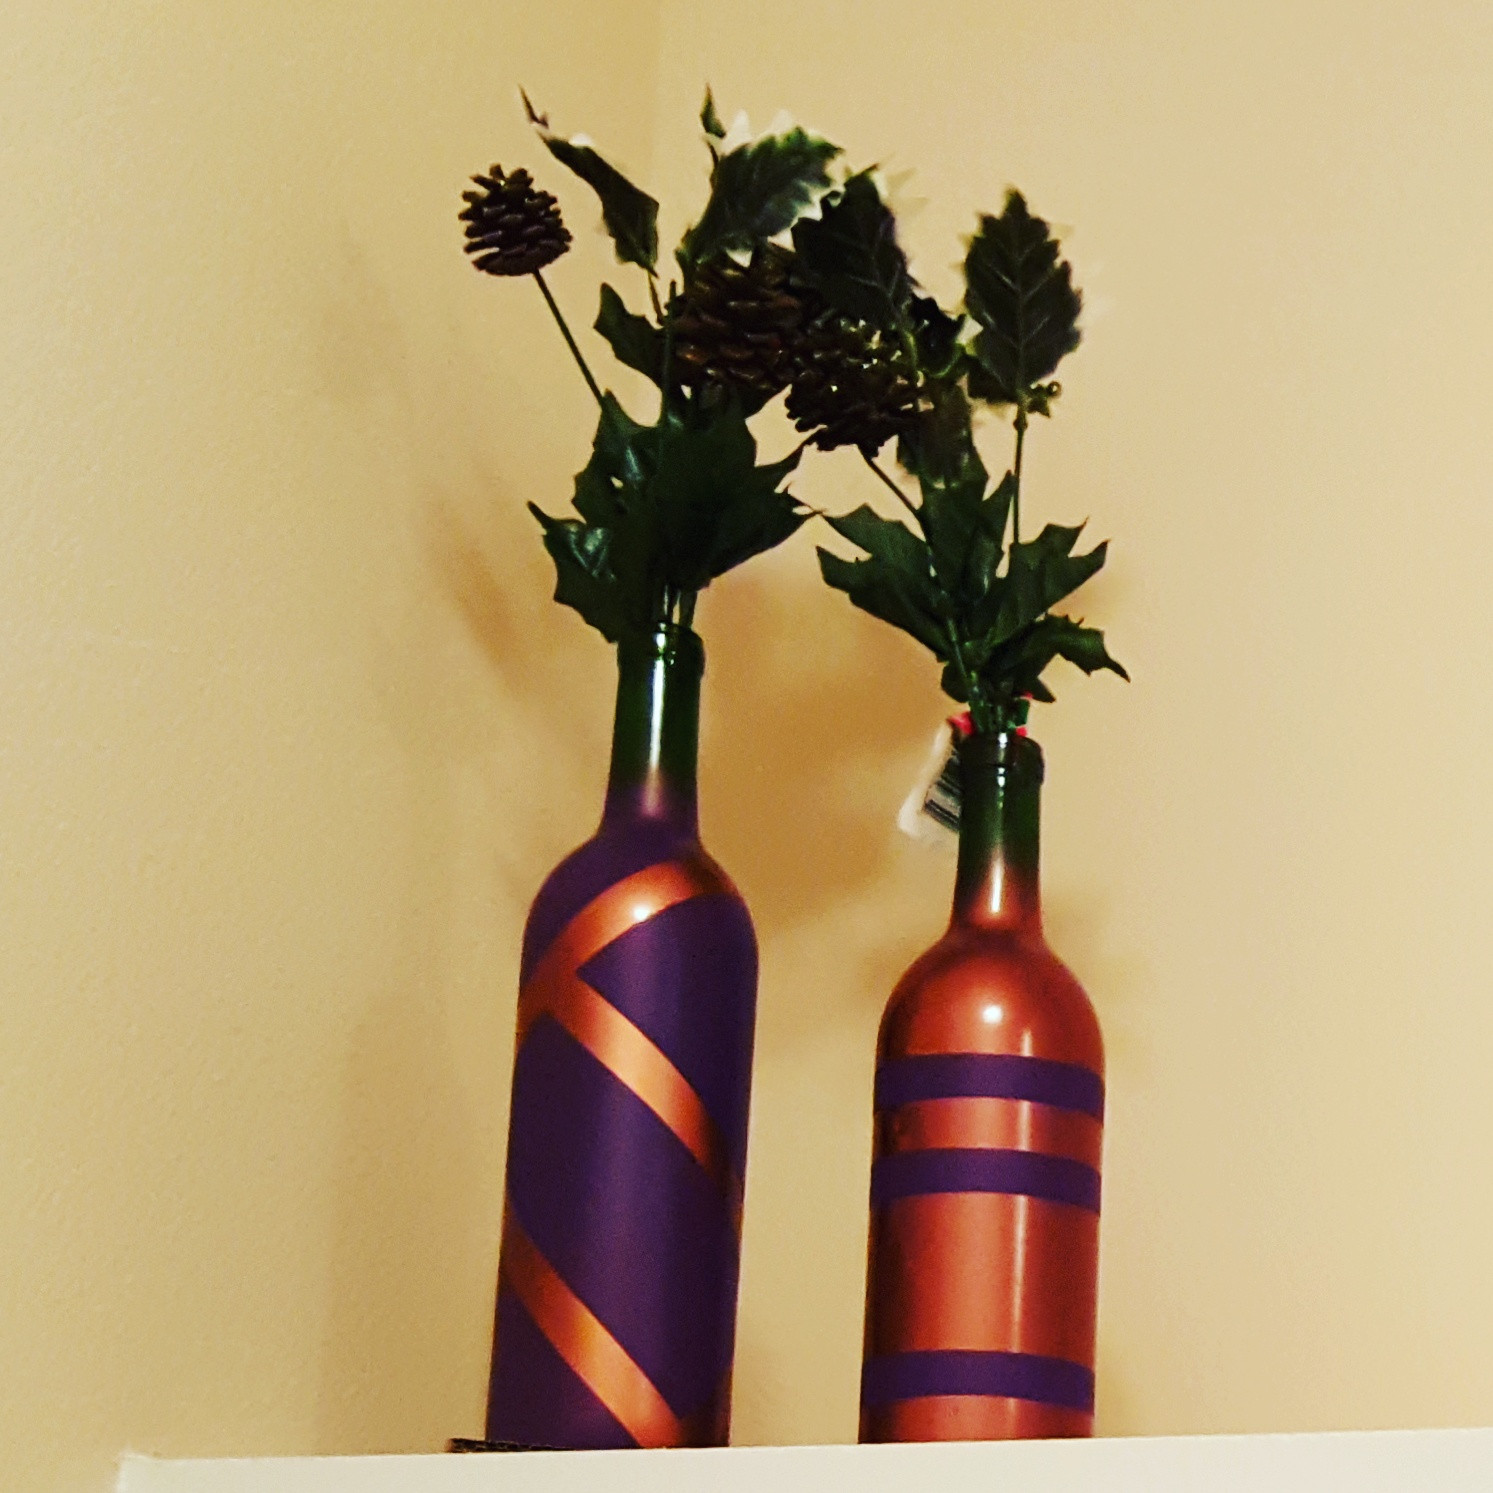 Upcycled Vases